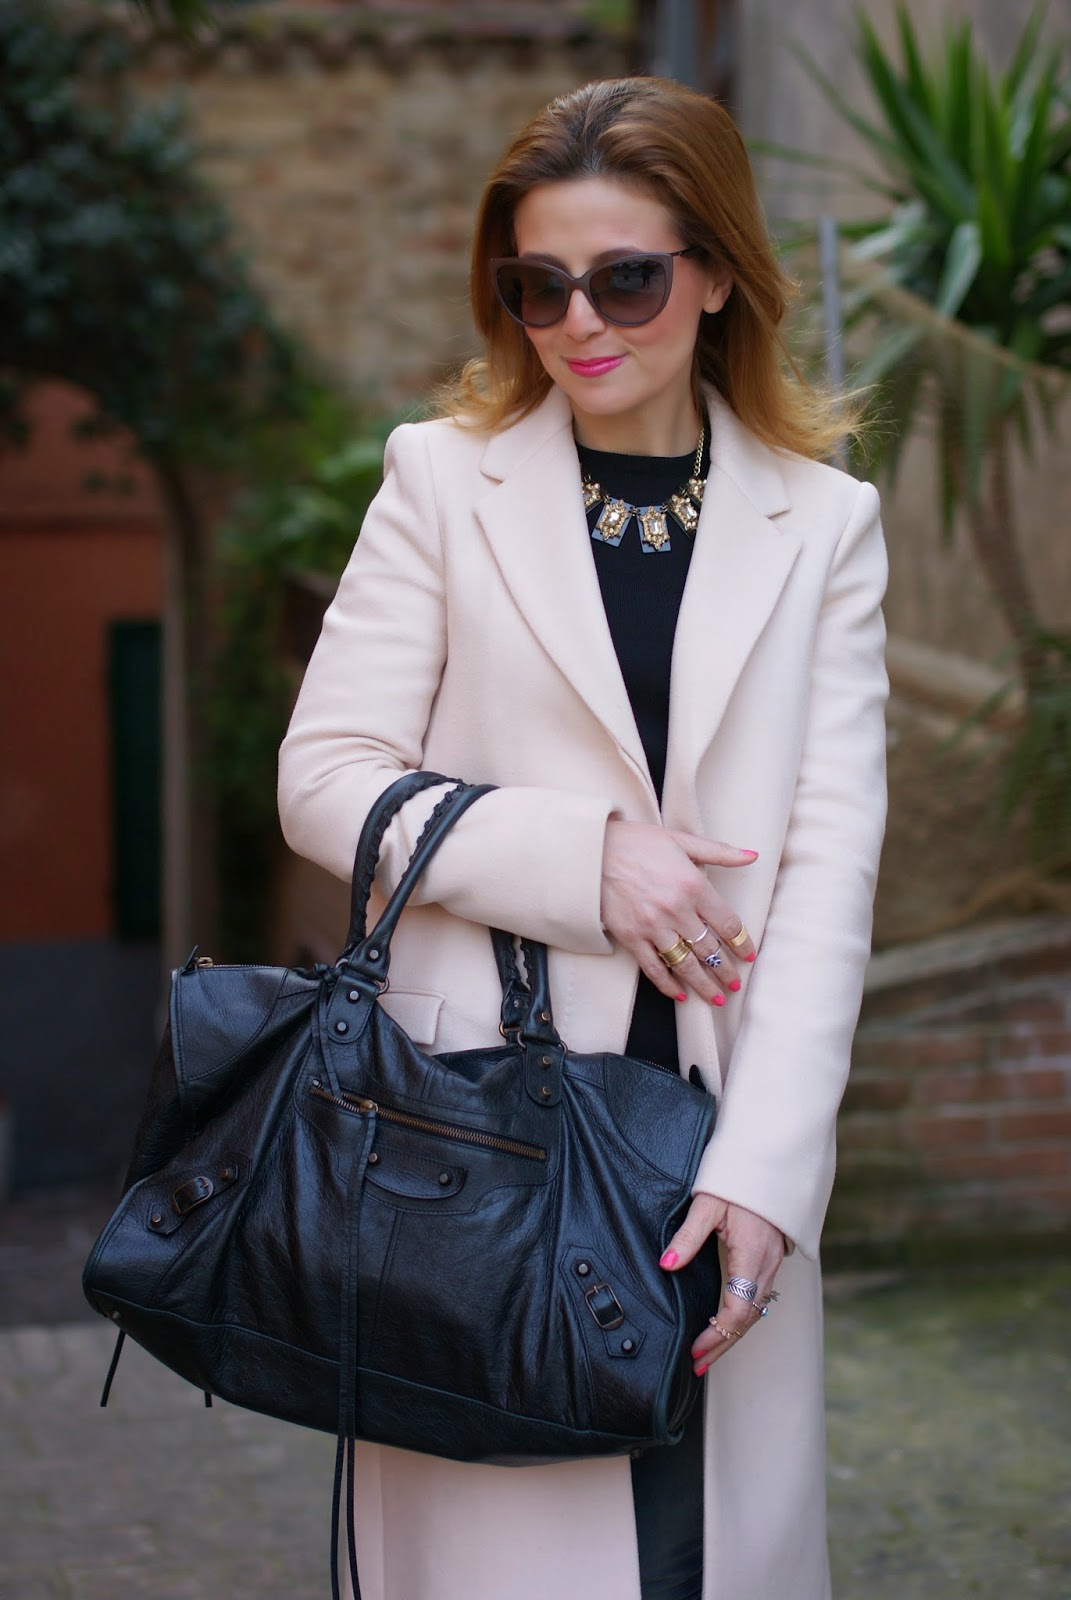 Balenciaga work bag, Zara pink coat, Fashion and Cookies, fashion blogger